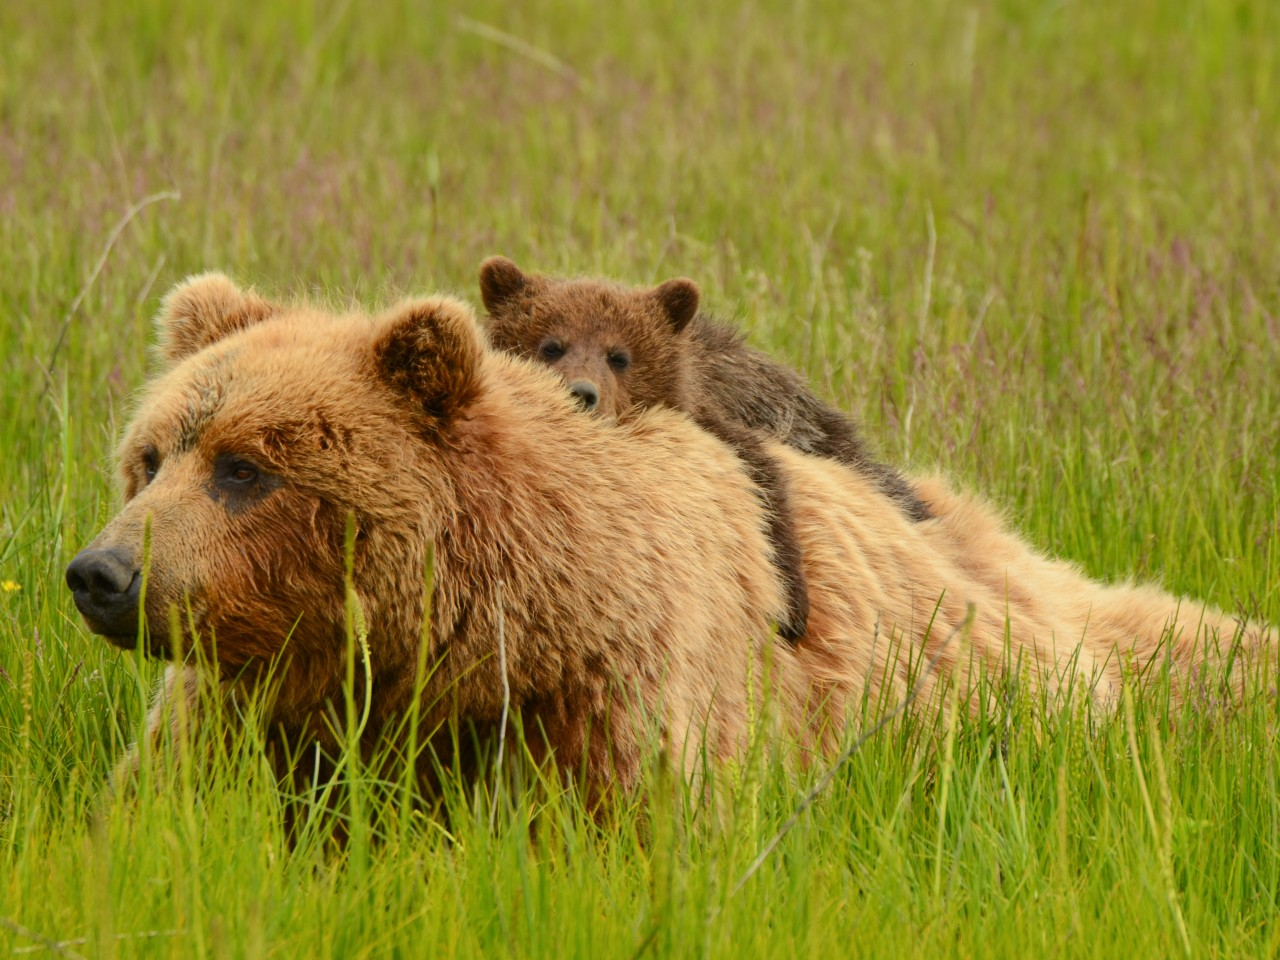 Pictures Of Grizzly Bears